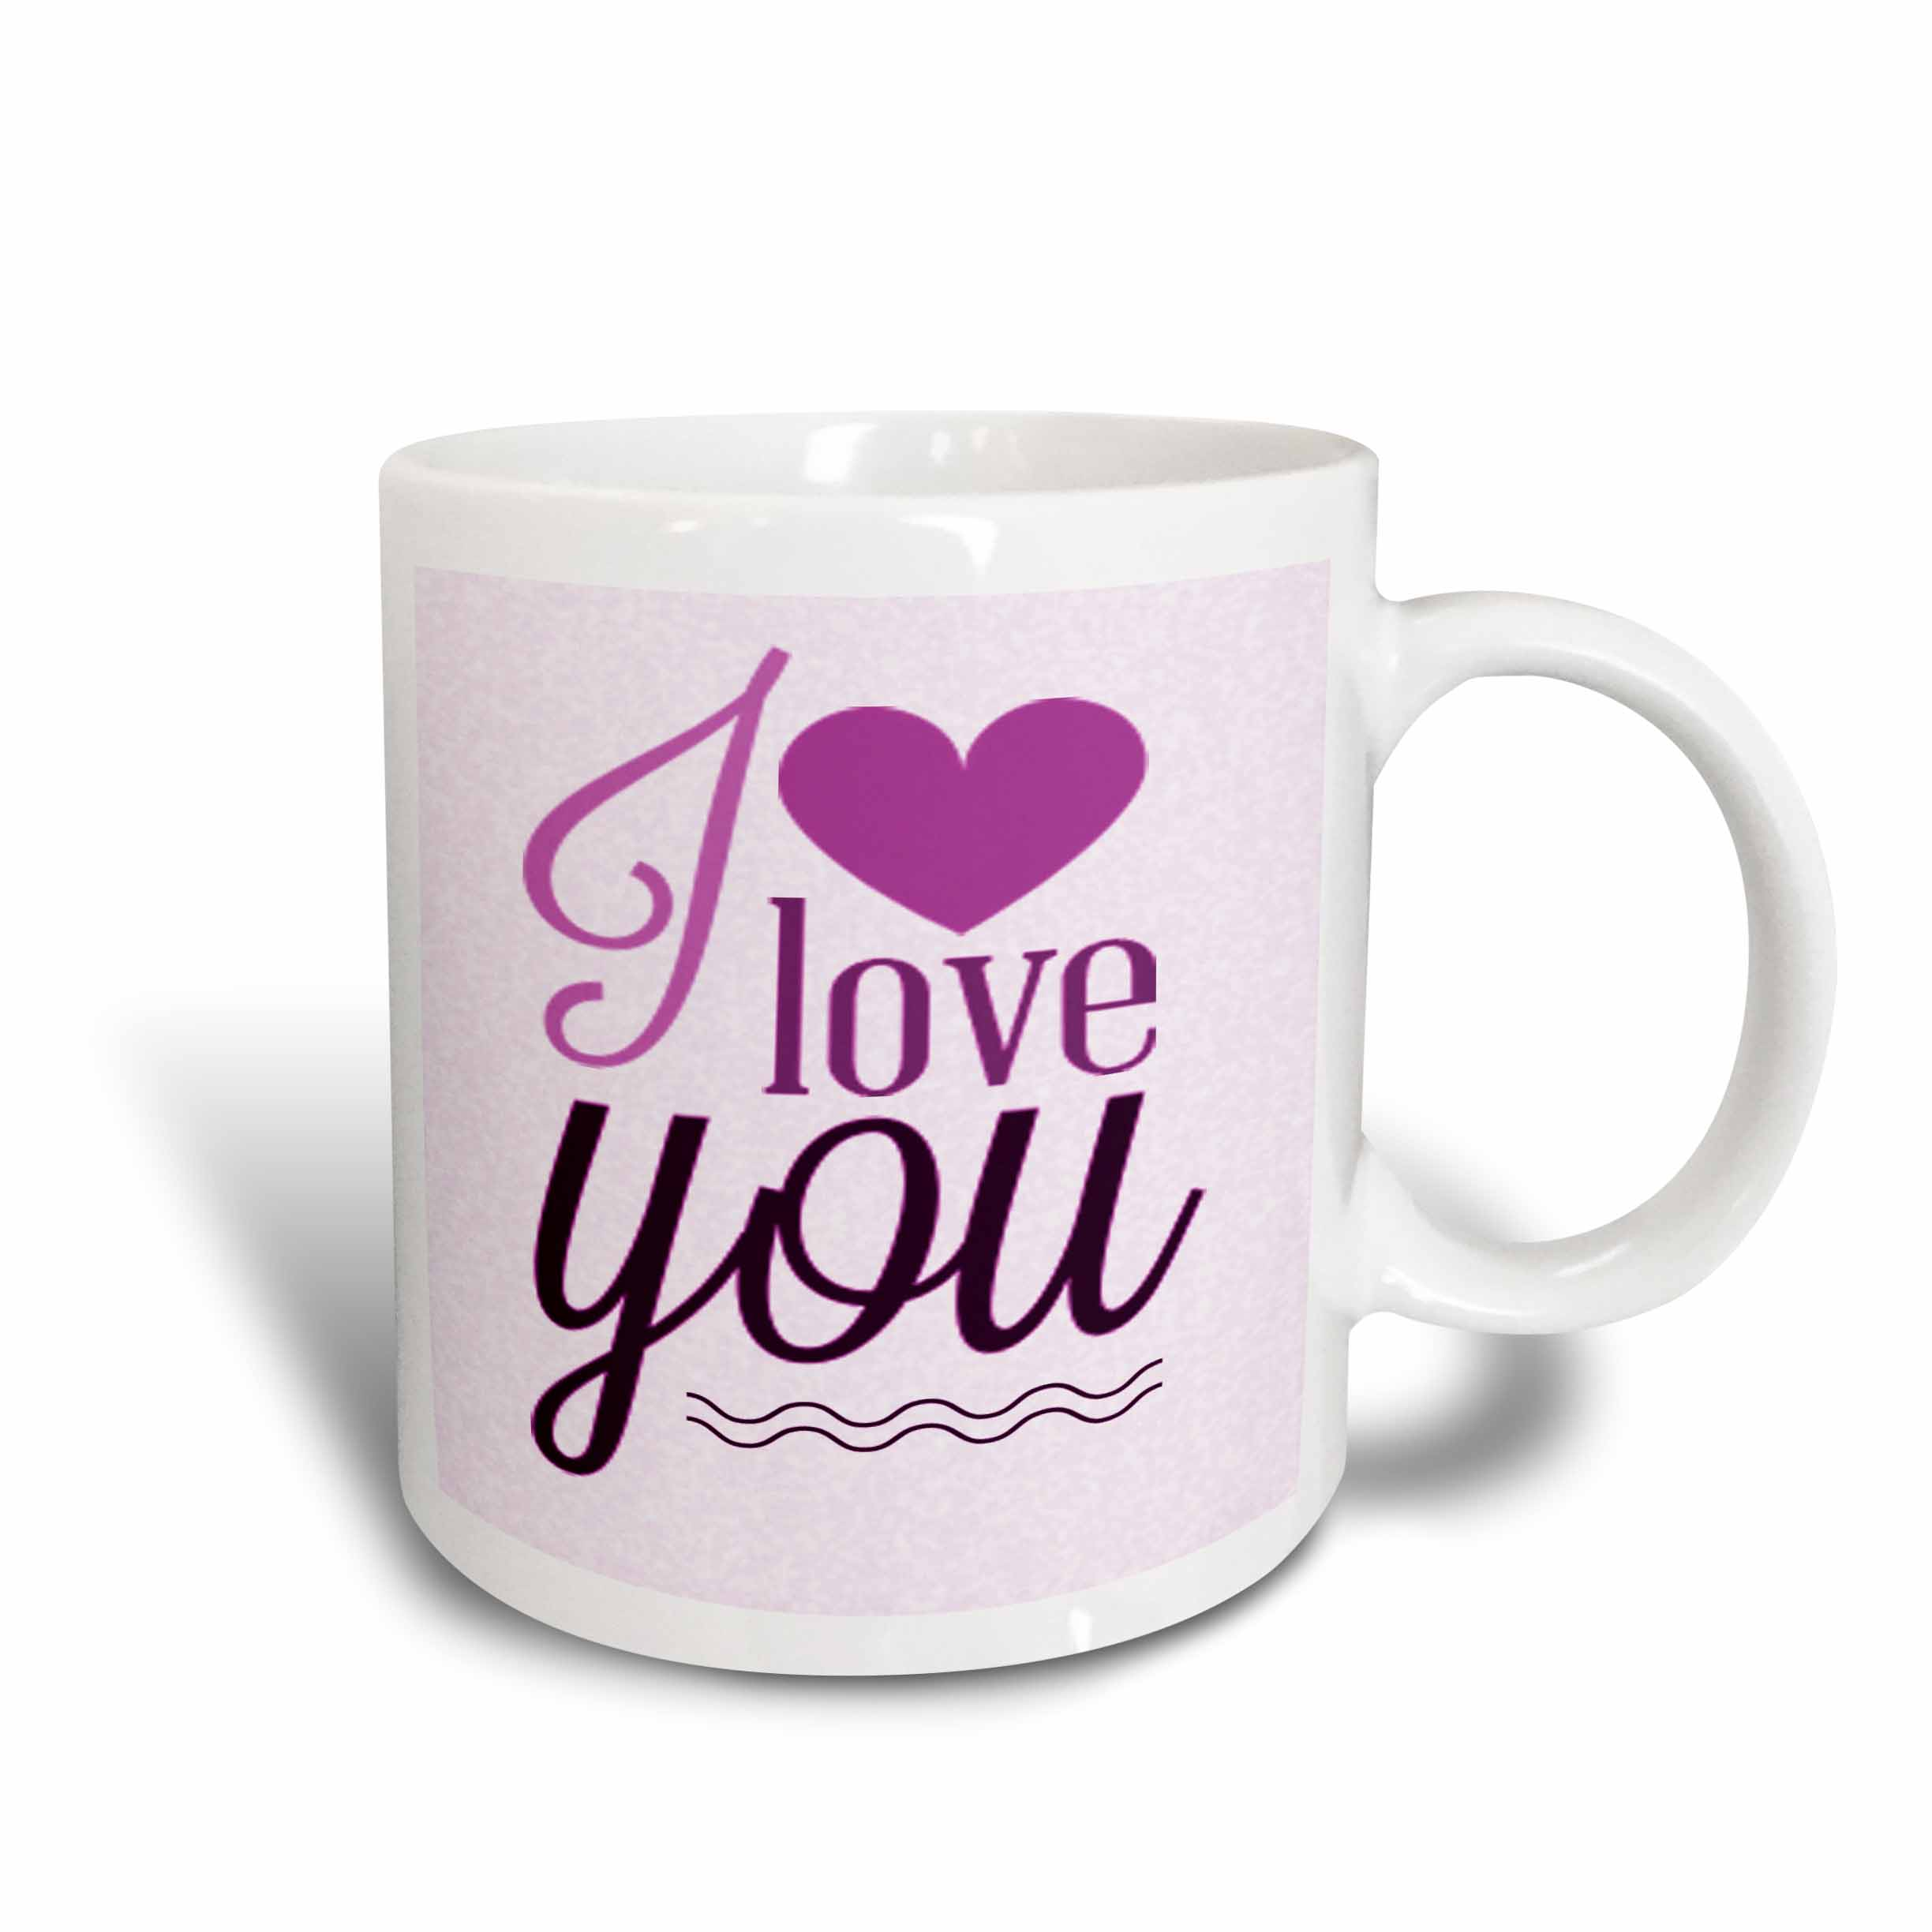 3dRose I Love You In Purple With A Heart, Ceramic Mug, 15-ounce